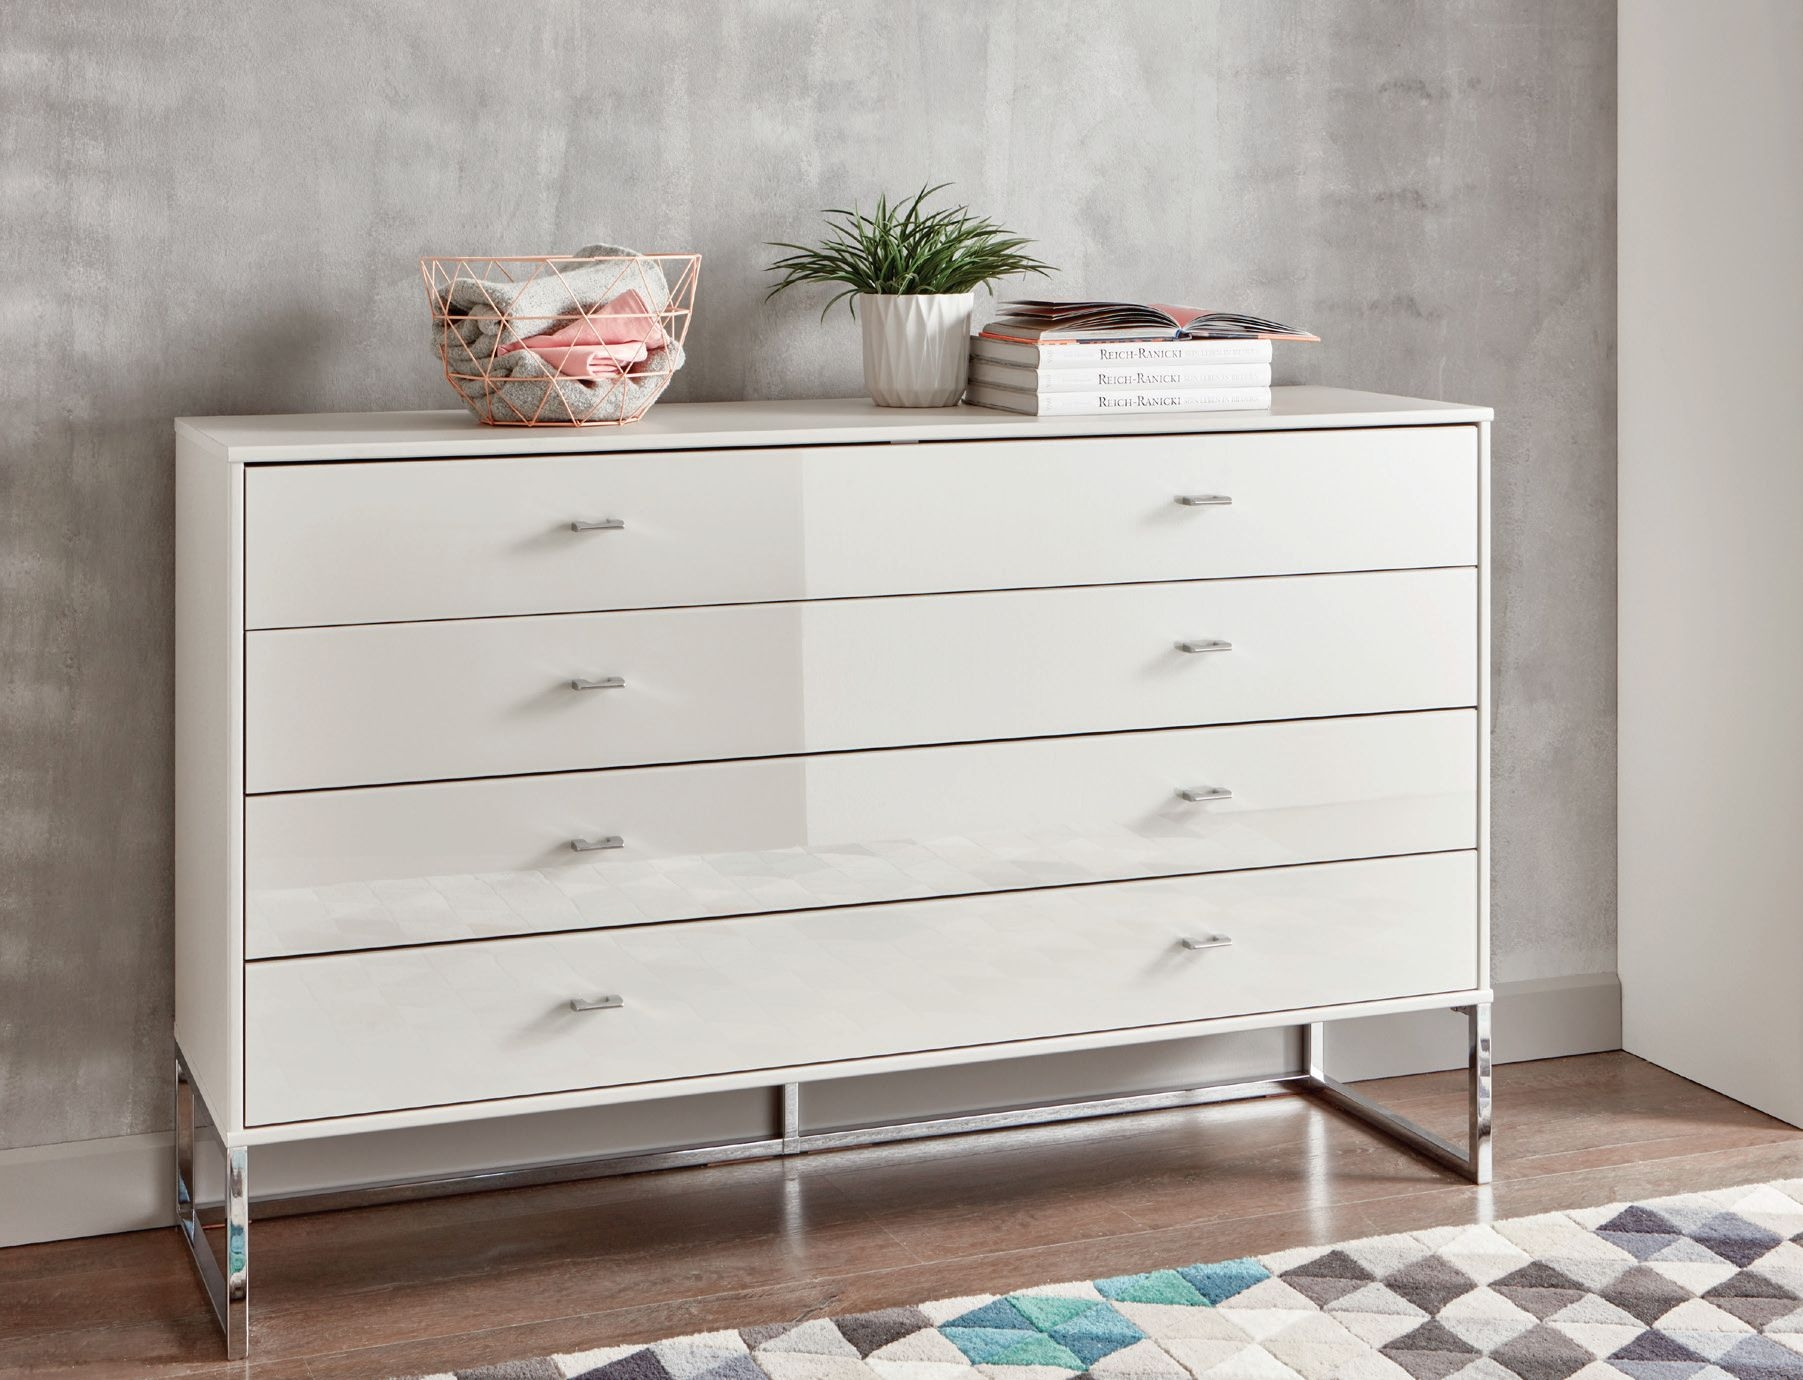 Wiemann Vigo 4 Drawer Large Chest in Champagne